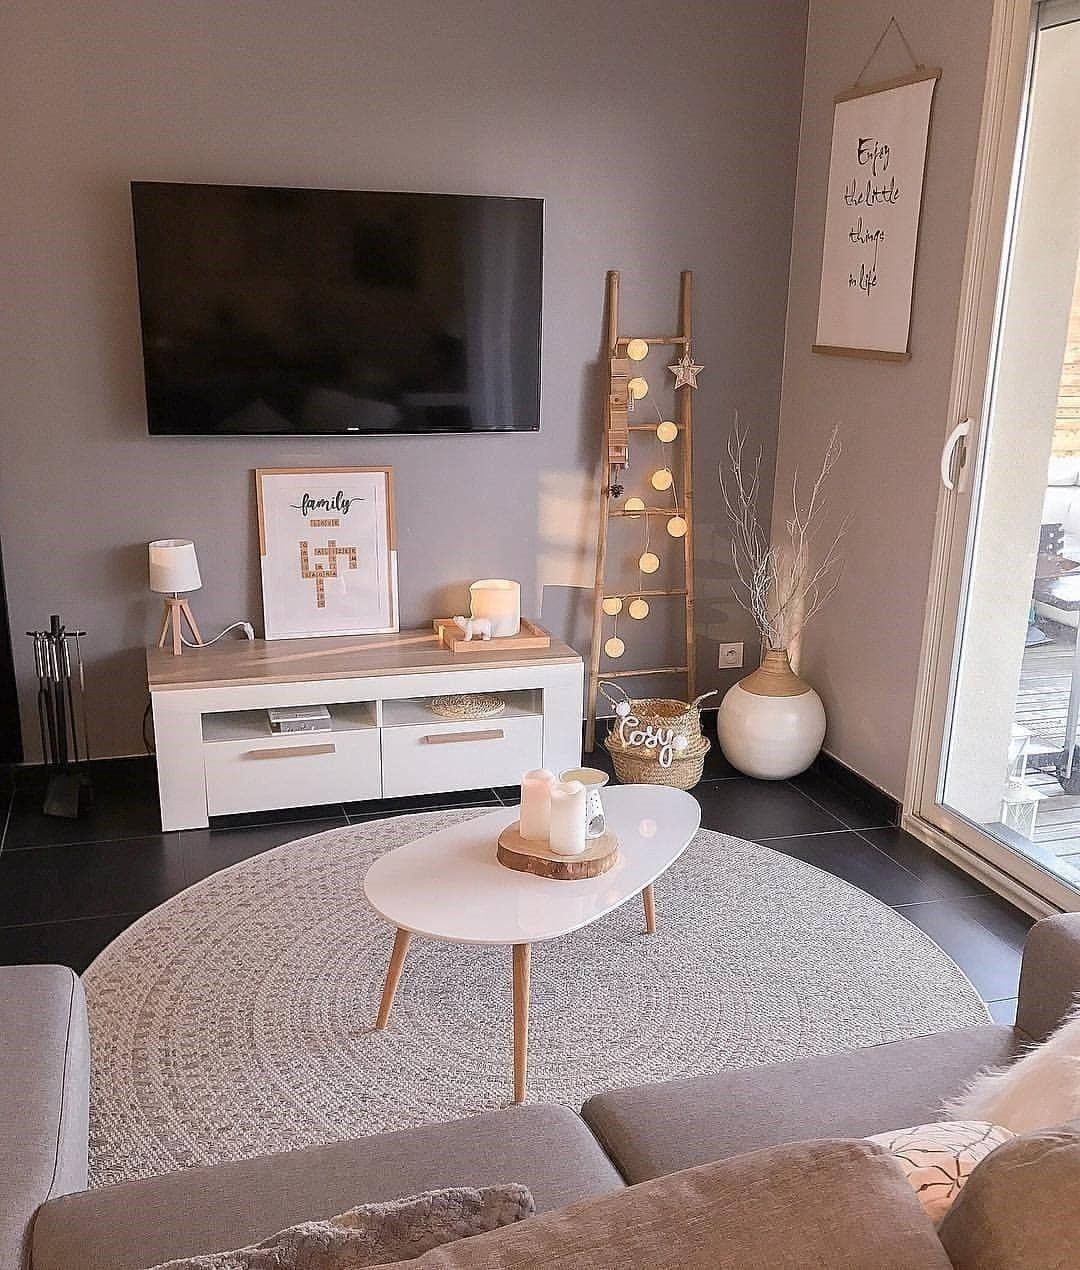 Color Your Dream With Online Home Improvement Loan Home Office Design Living Room Decor Apartment Apartment Living Room